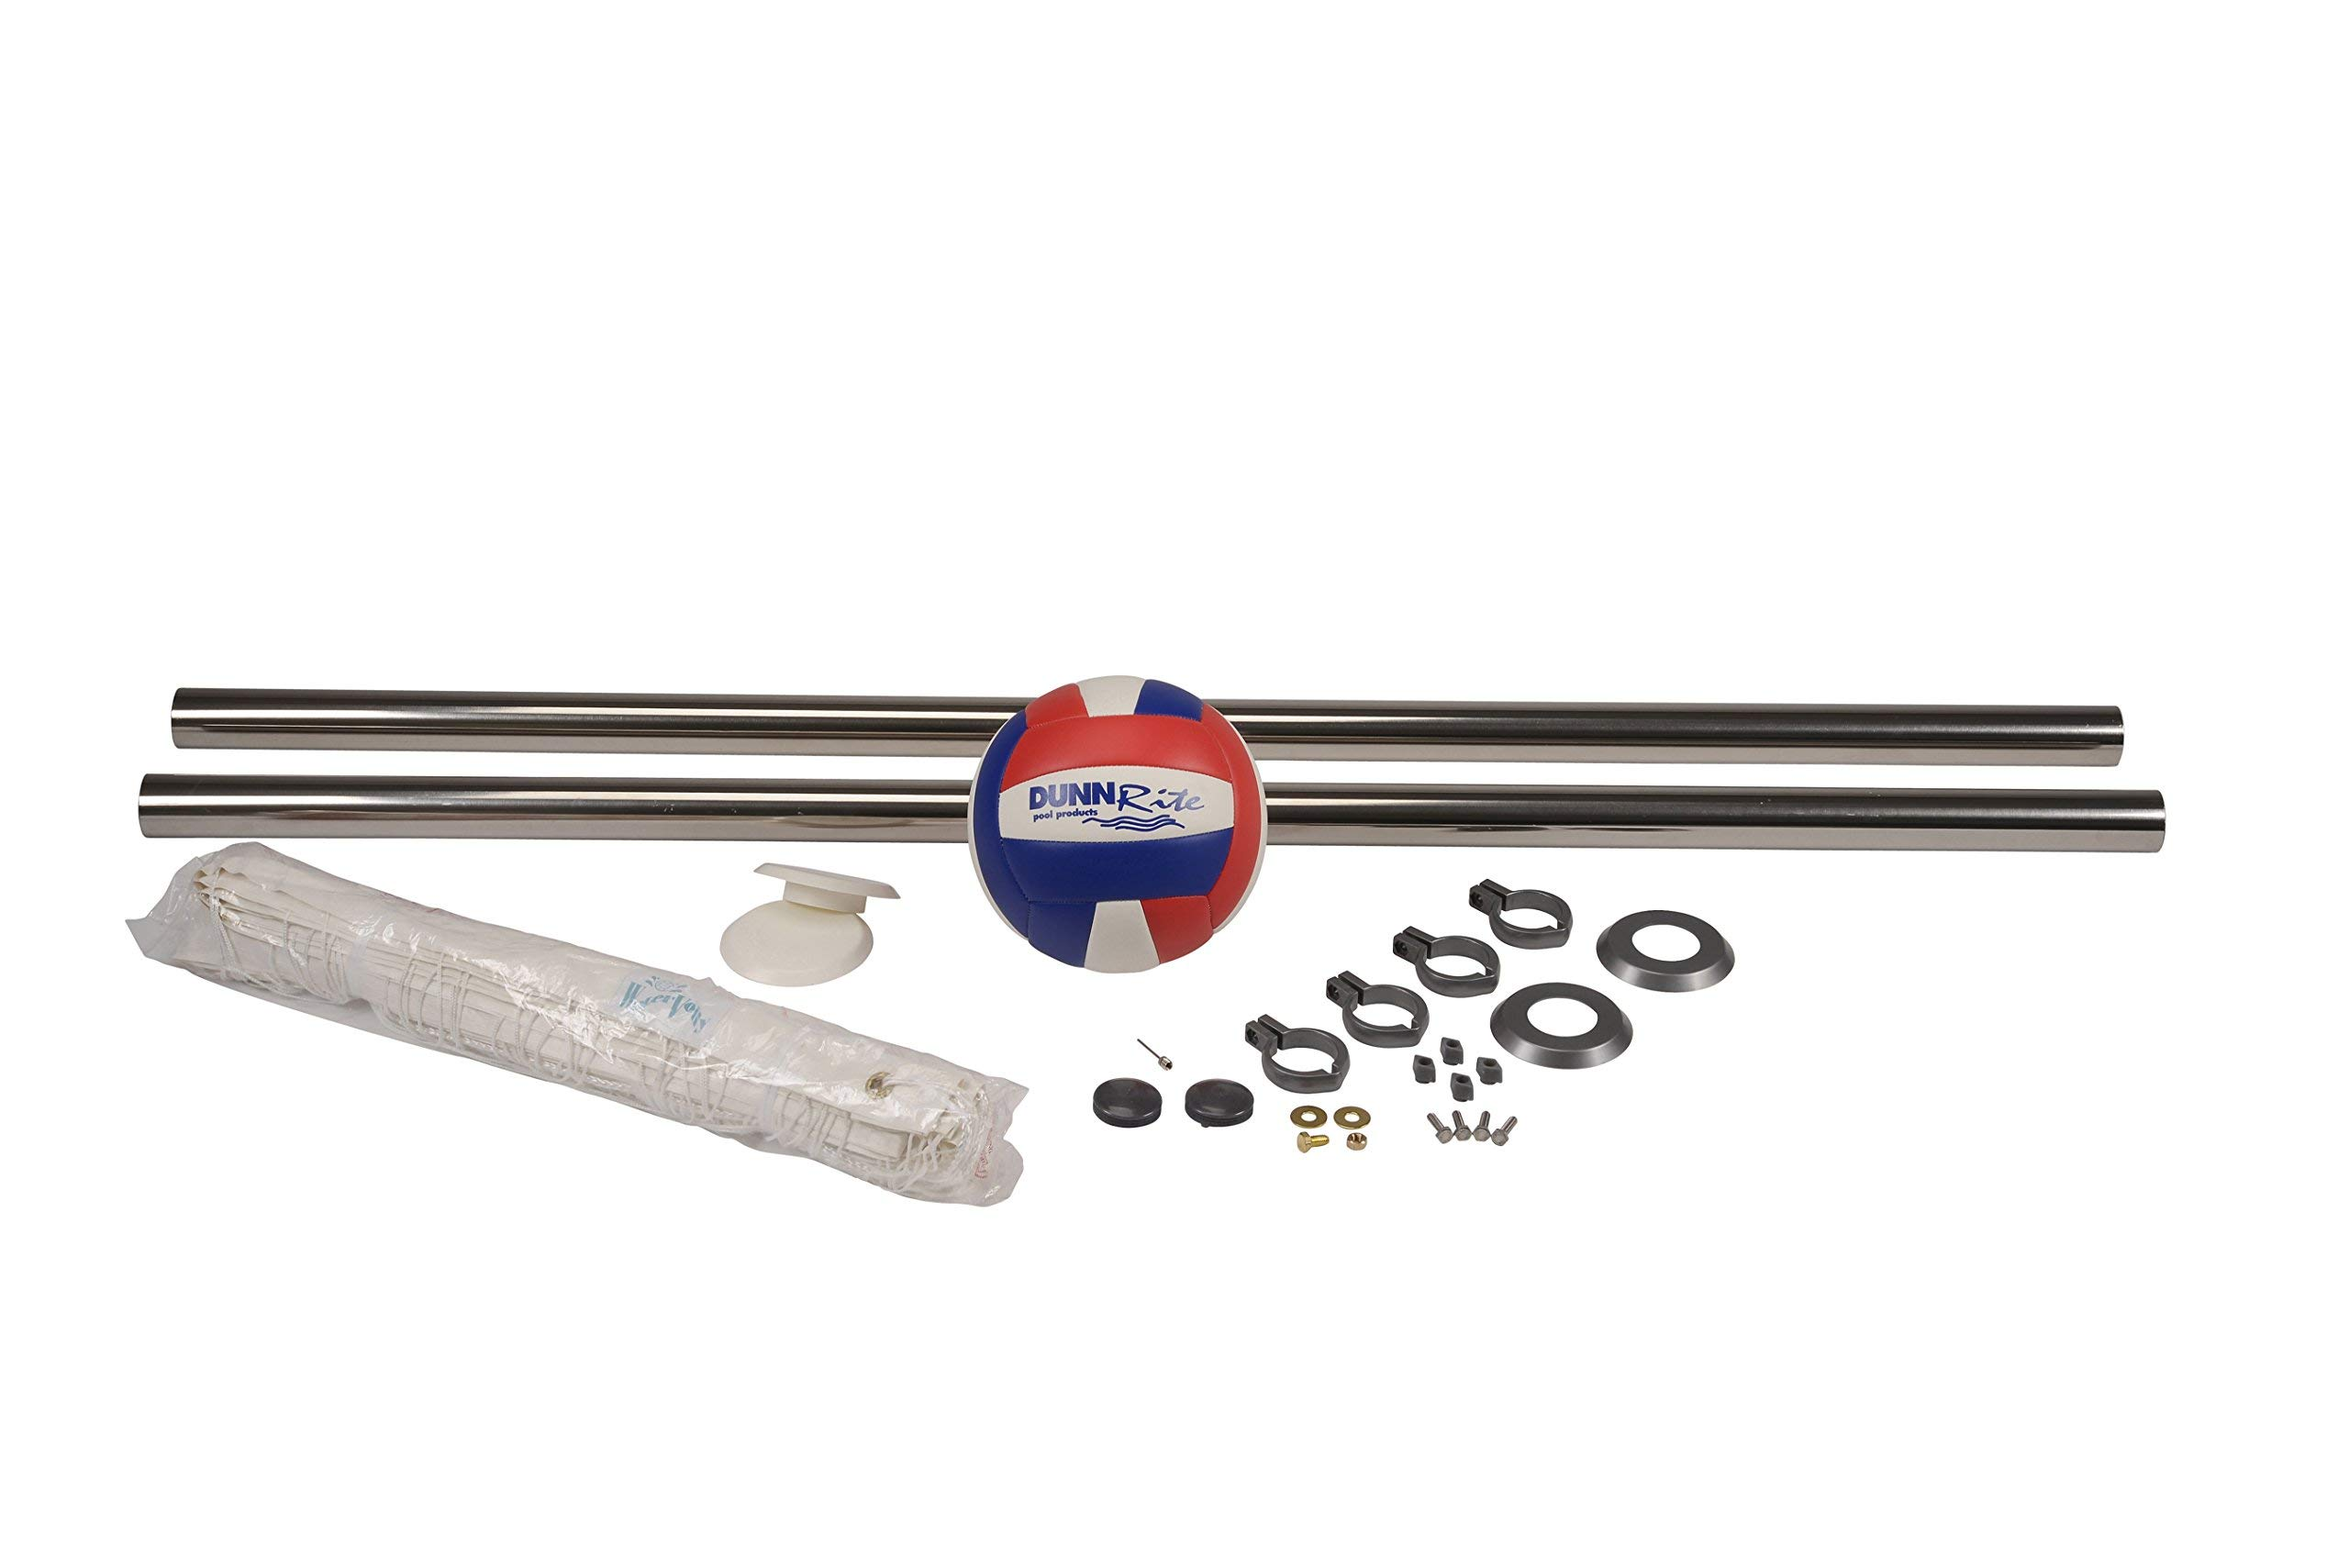 Dunnrite Products Stainless Deckvolly by Dunnrite Products